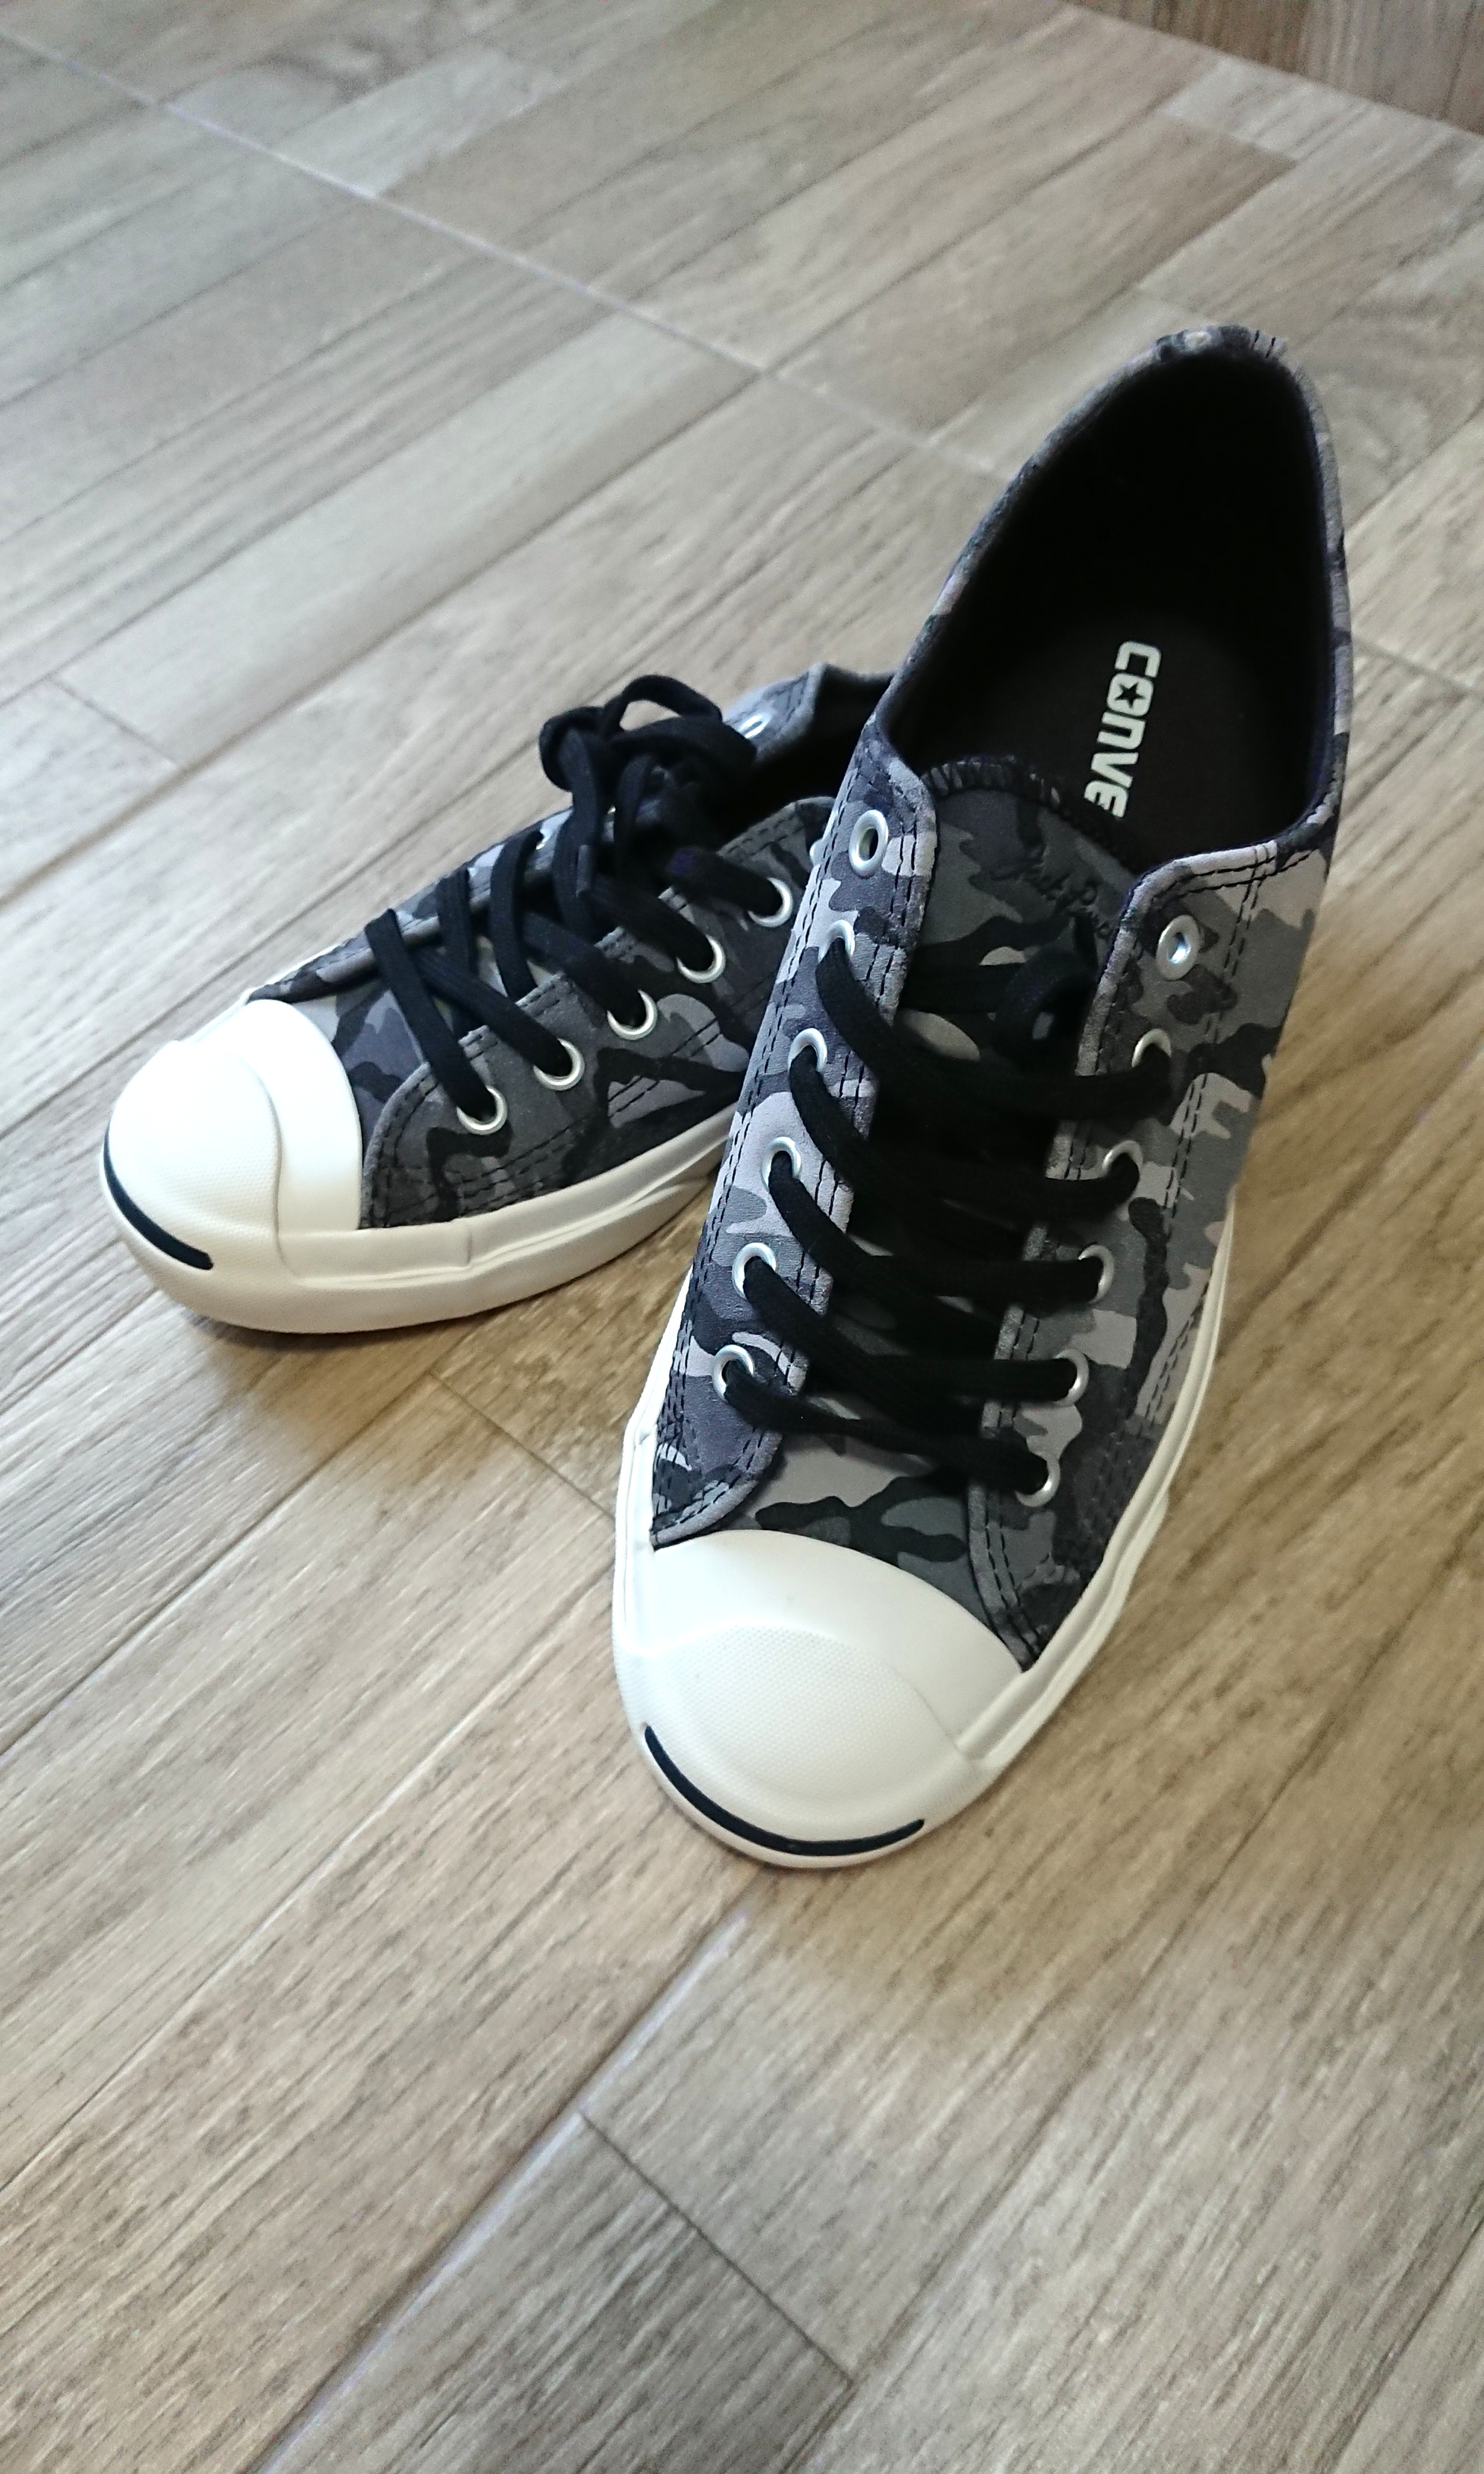 3bc648c4c929 BNIB Converse Jack Purcell Grey Camo Sneakers